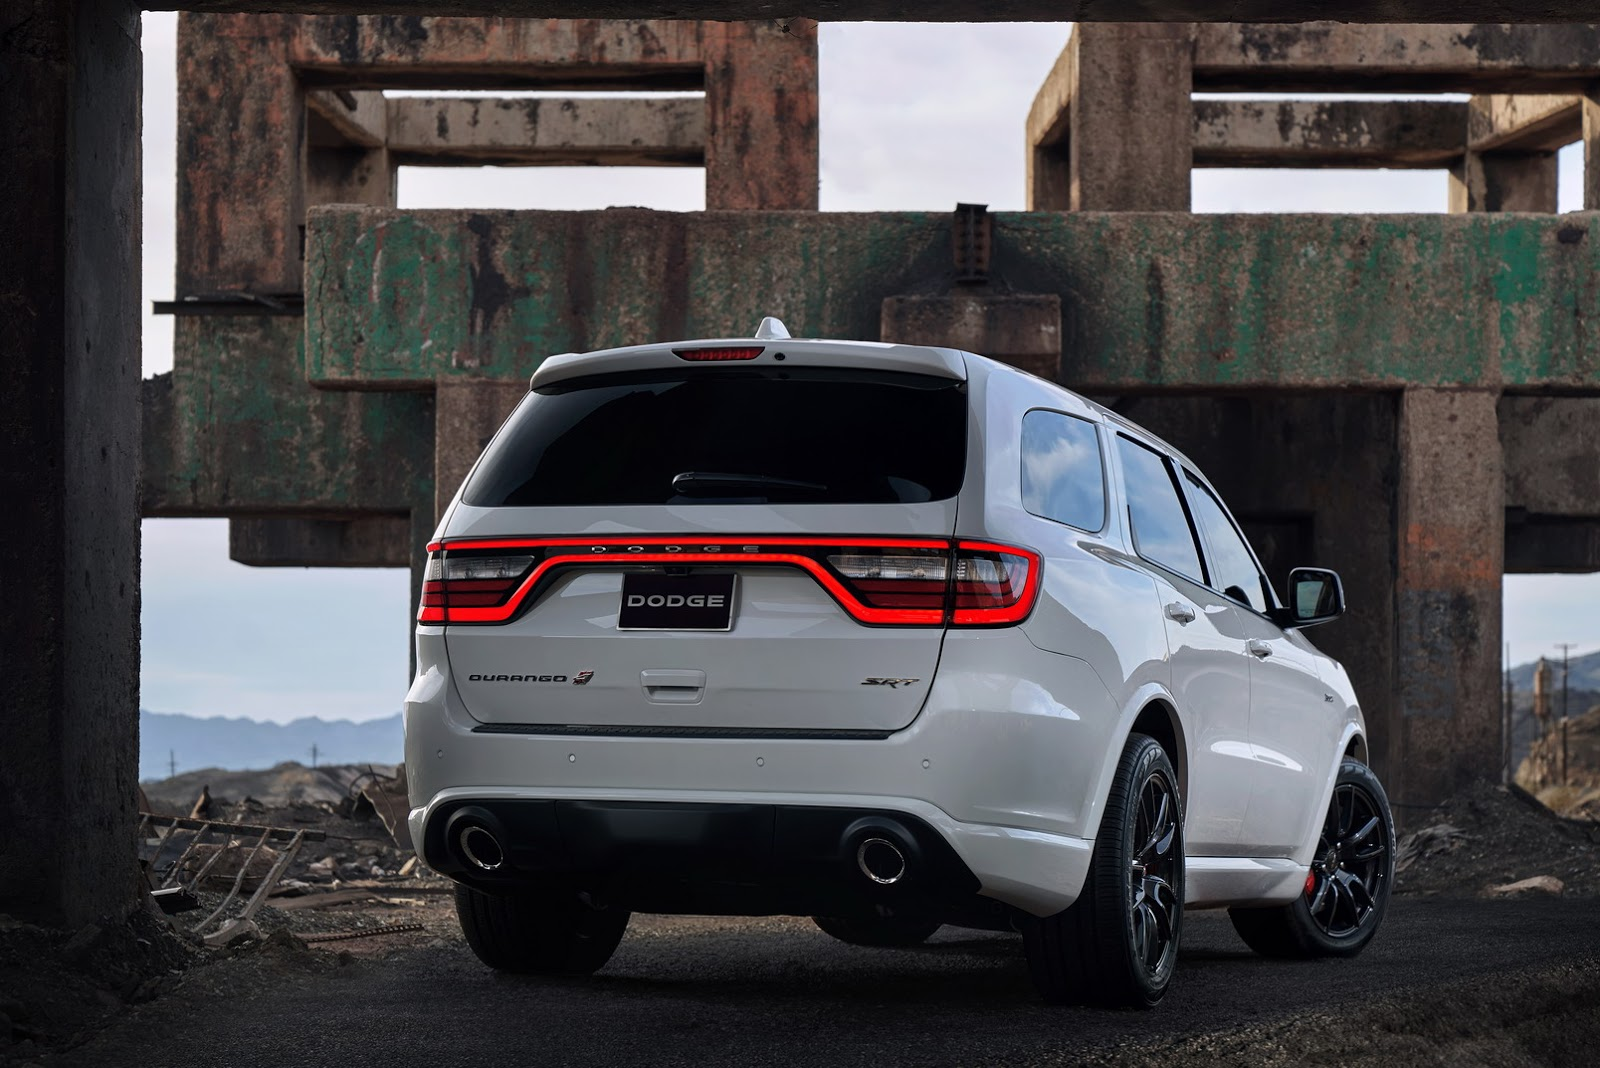 Dodge Durango SRT 2018 (24)